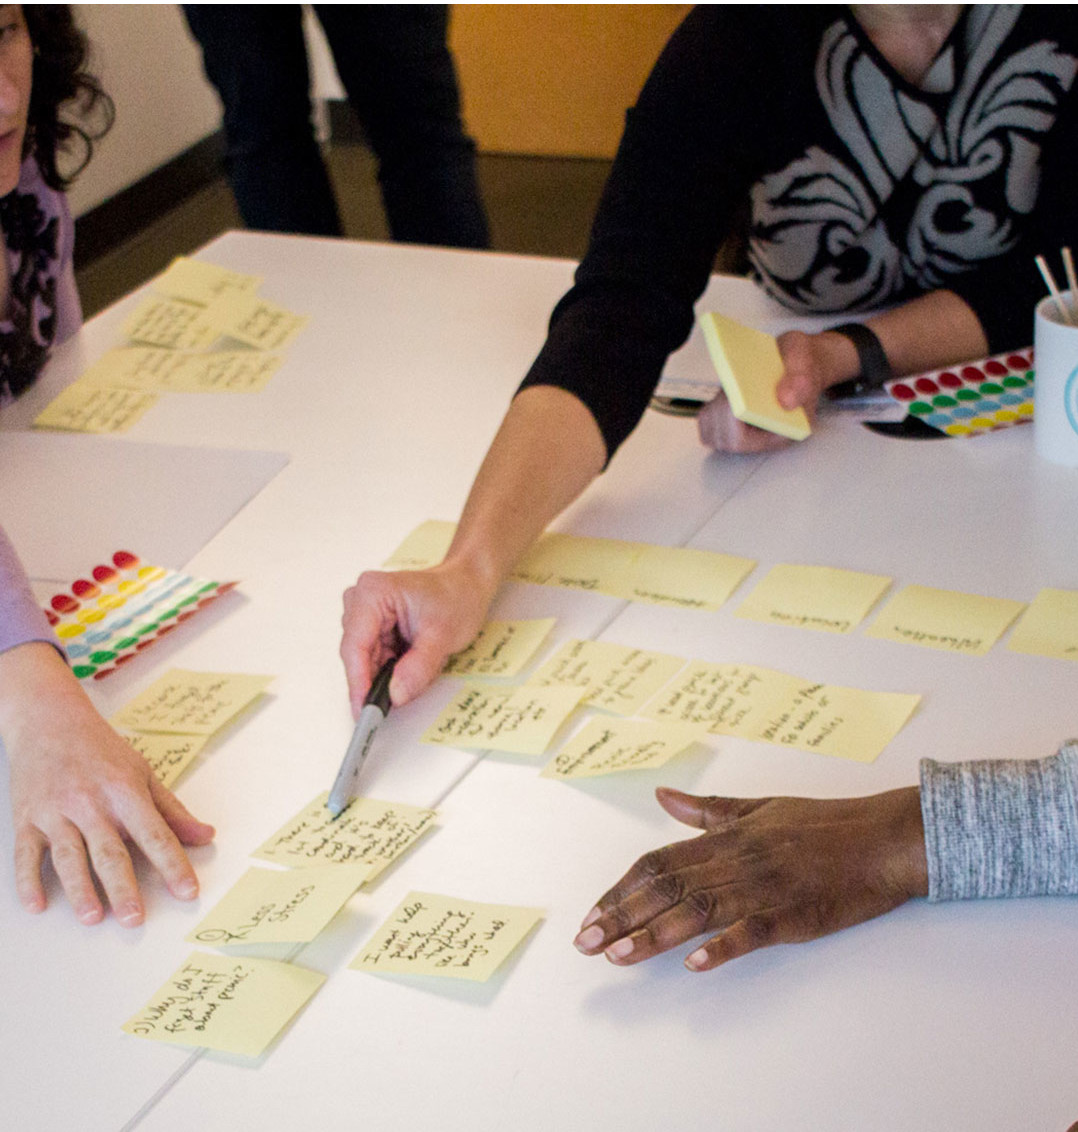 Analyzing design research as a team